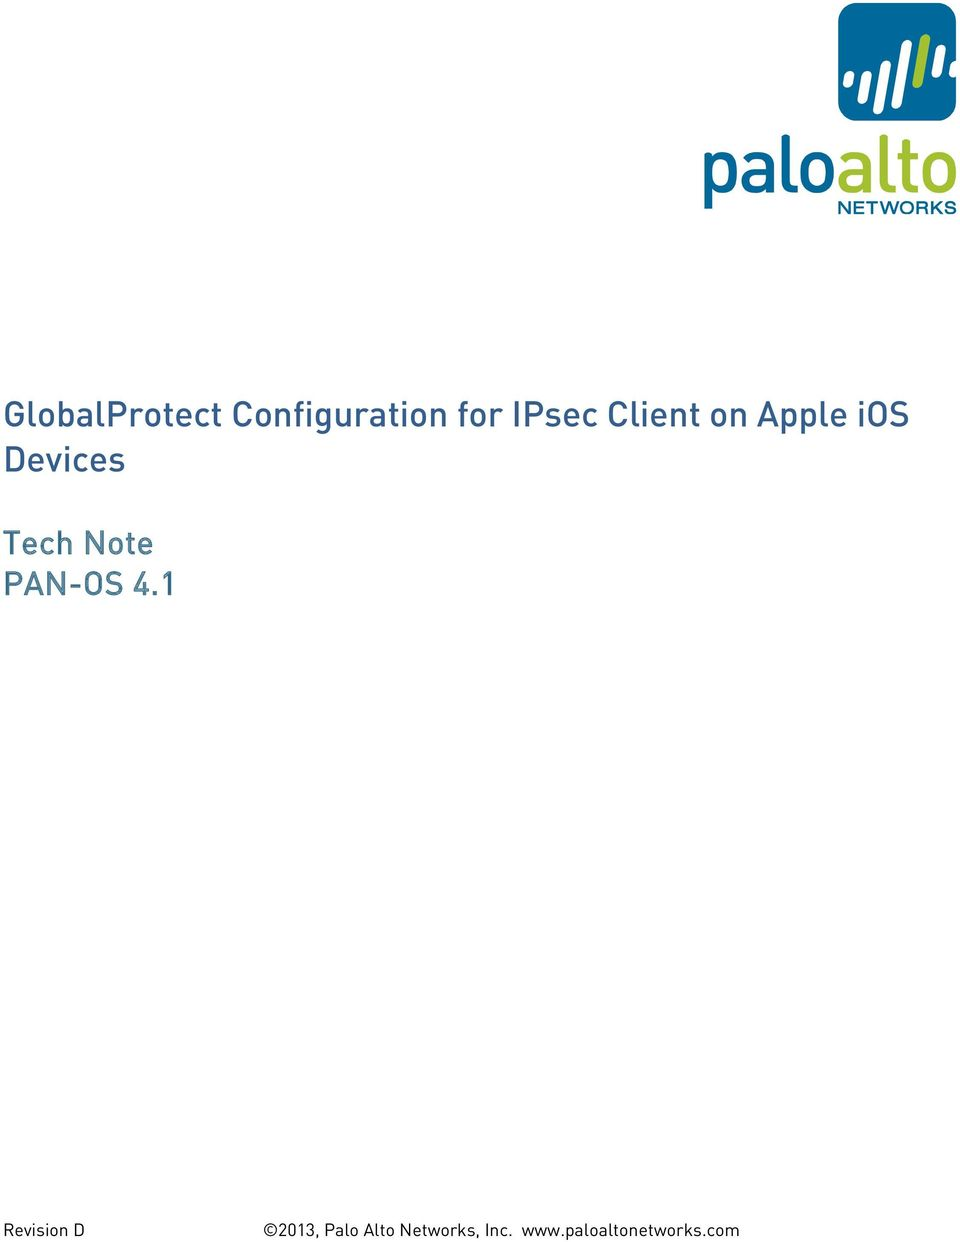 GlobalProtect Configuration for IPsec Client on Apple ios